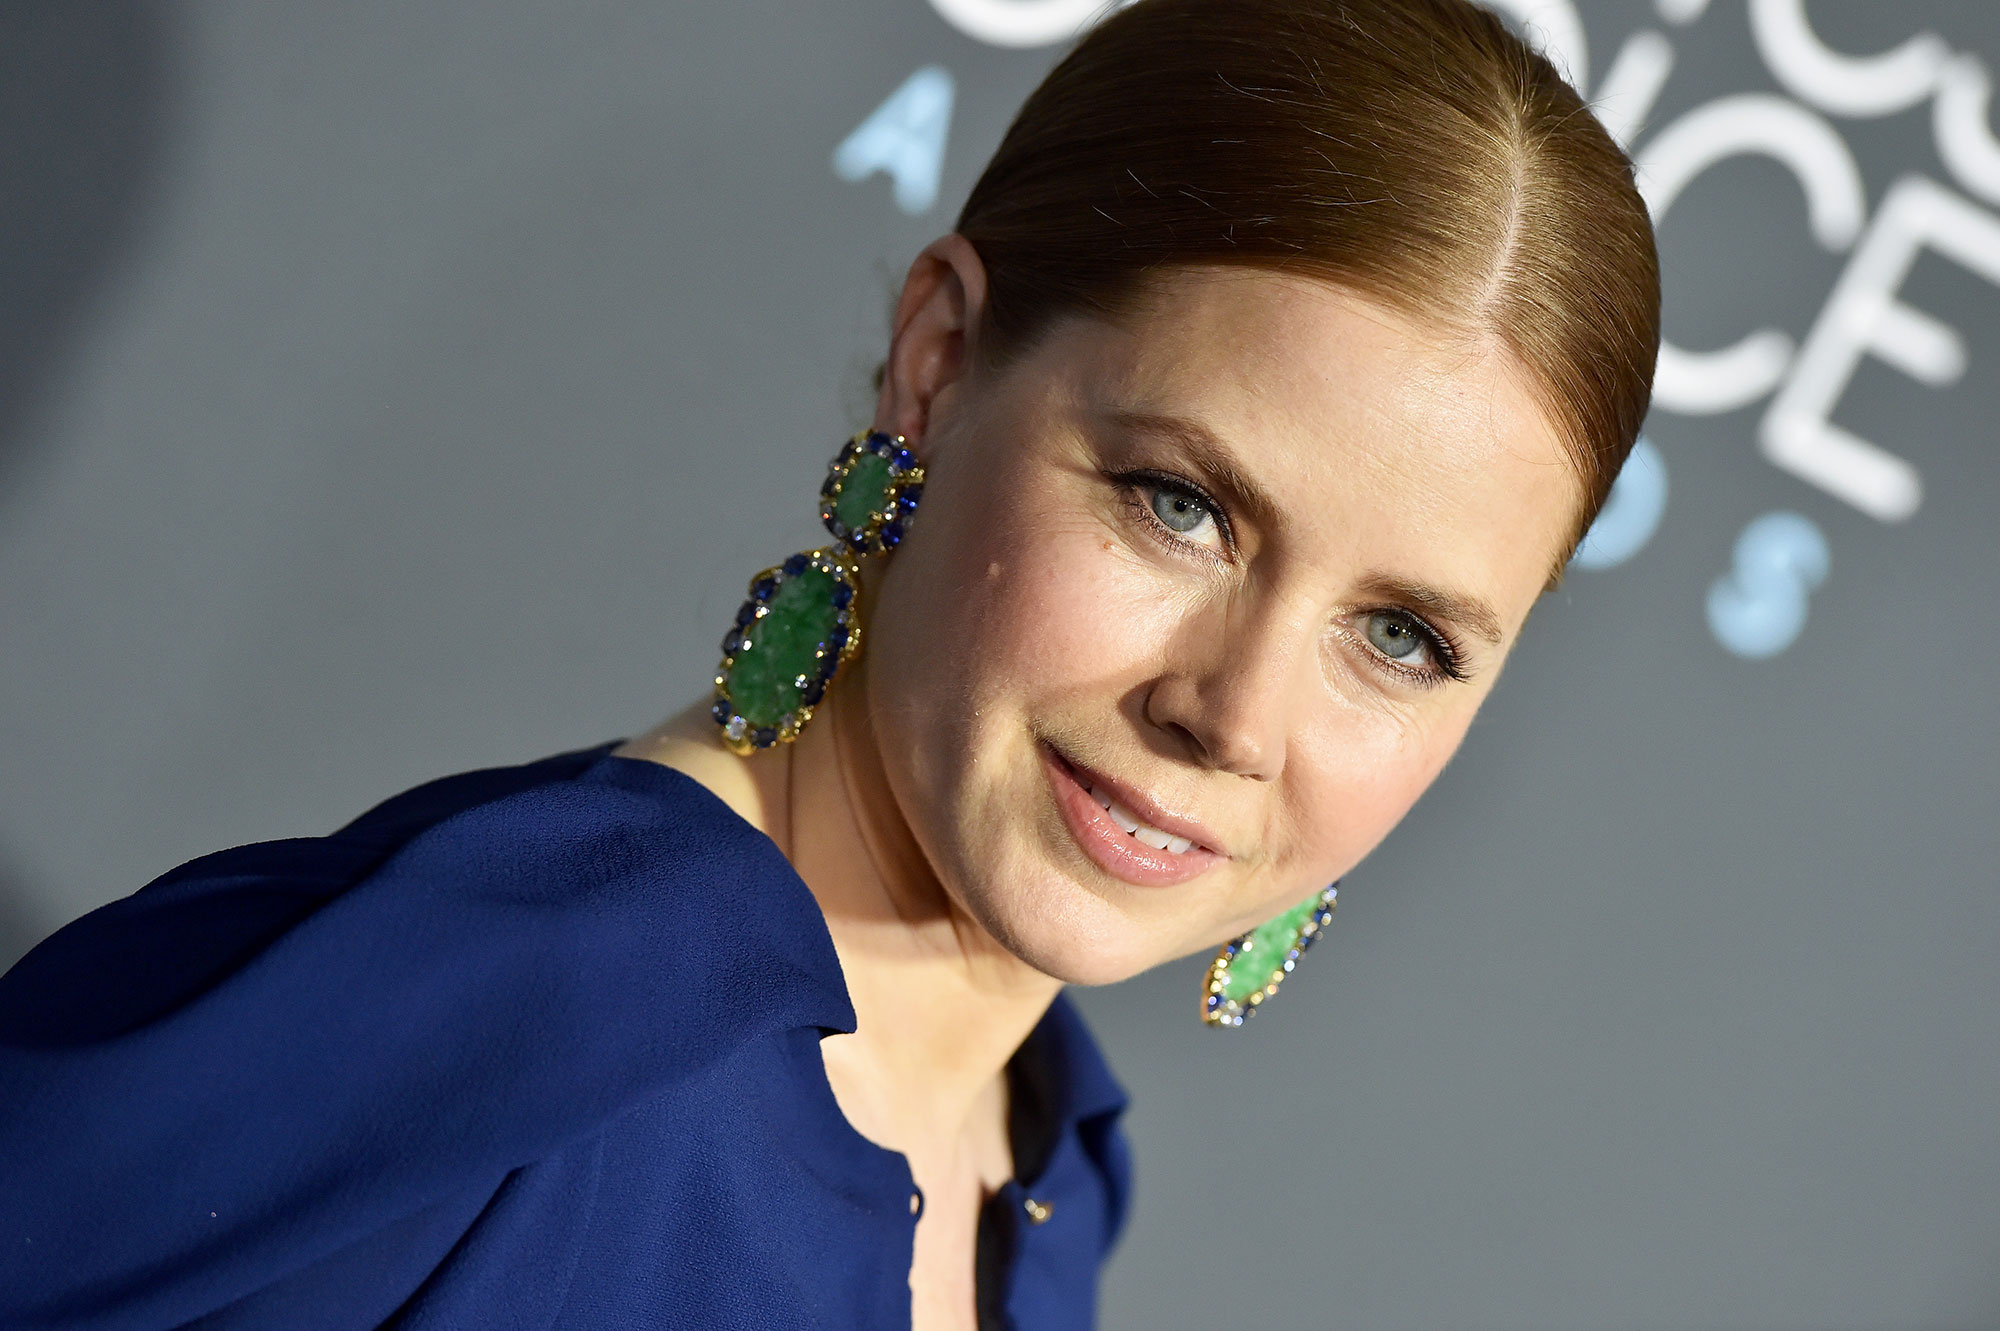 Amy Adams Critics' Choice Awards 2019 - With a sleek center-parted bun by hairstylist John D. using TRESemme products and peachy nude makeup by Stephen Solitto using Beautycounter.